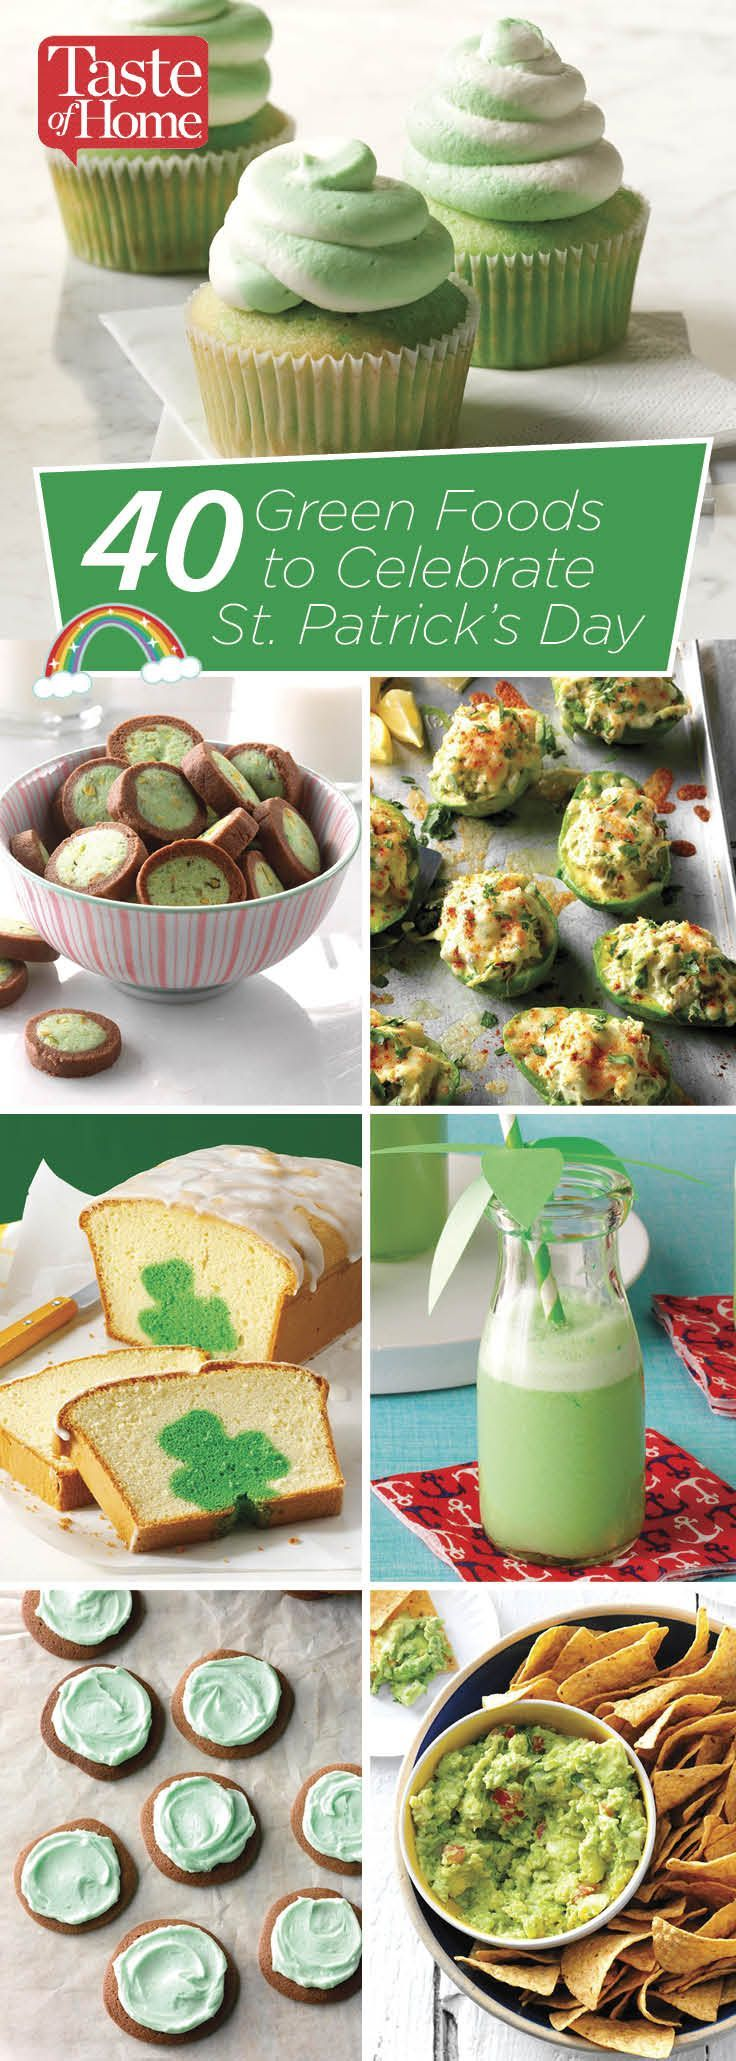 40 Green Foods to Celebrate St. Patrick's Day